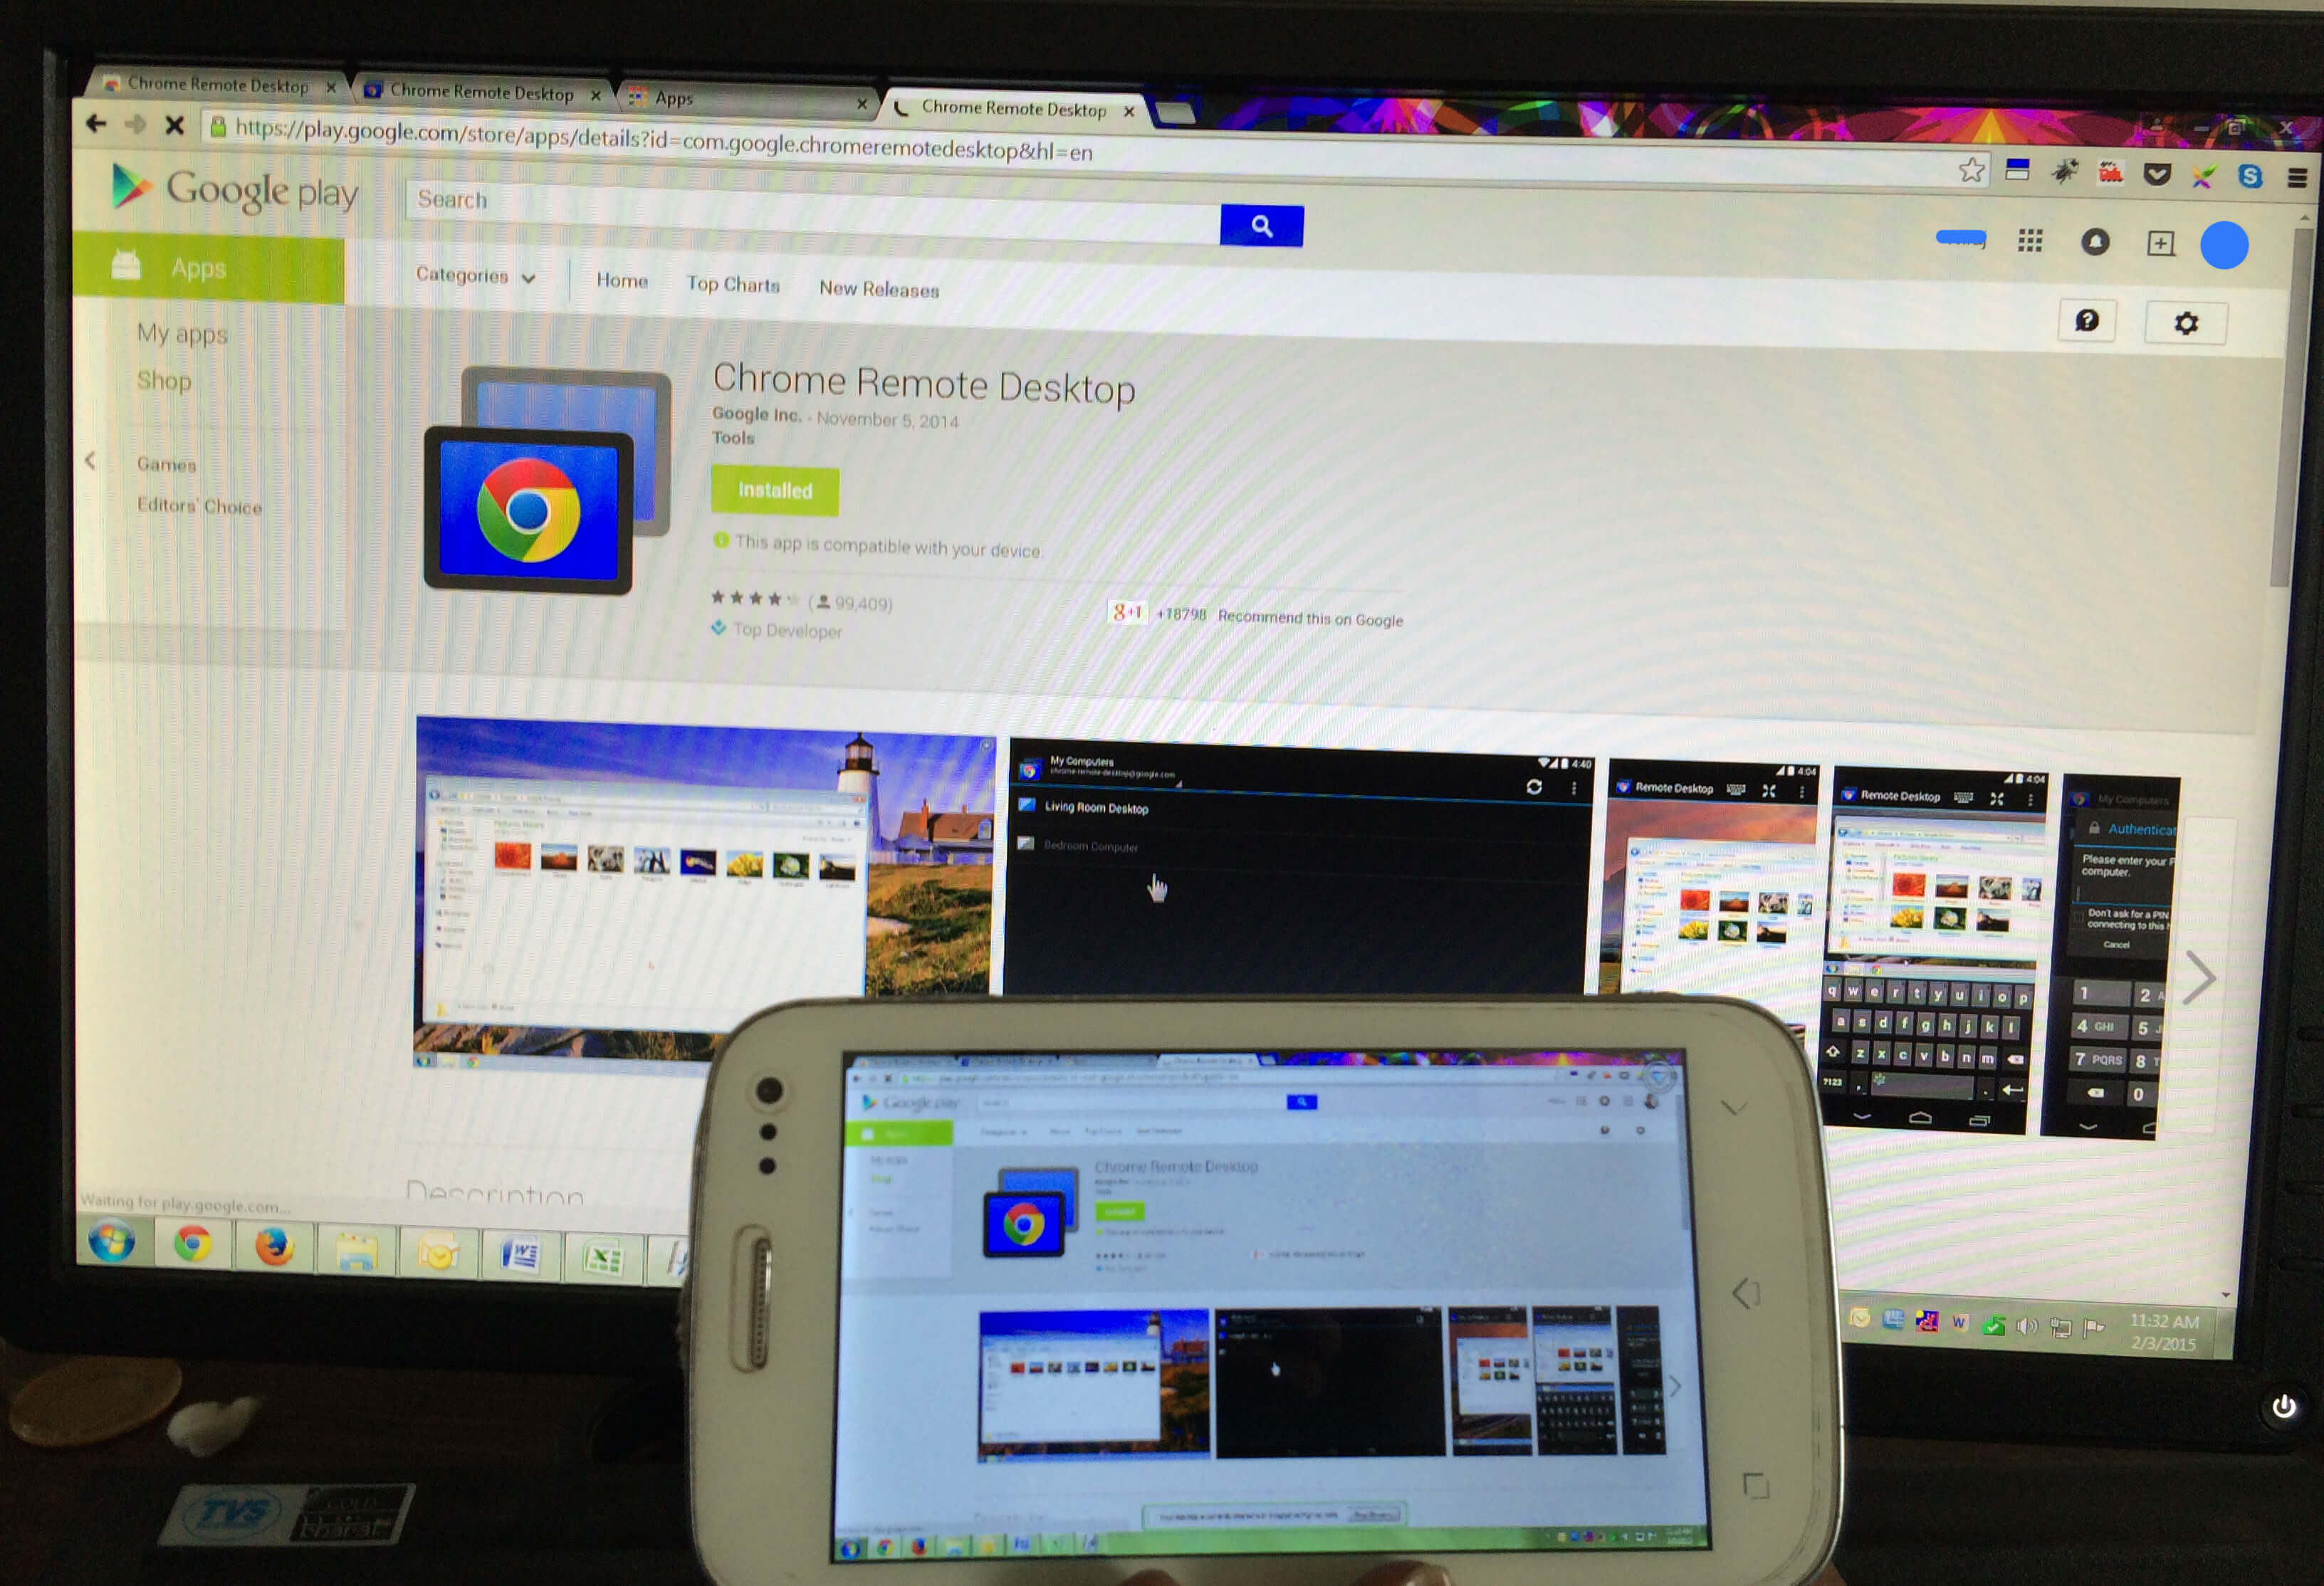 Iphone Android Desktop: Guide To Install Google Chrome Remote Desktop In Android